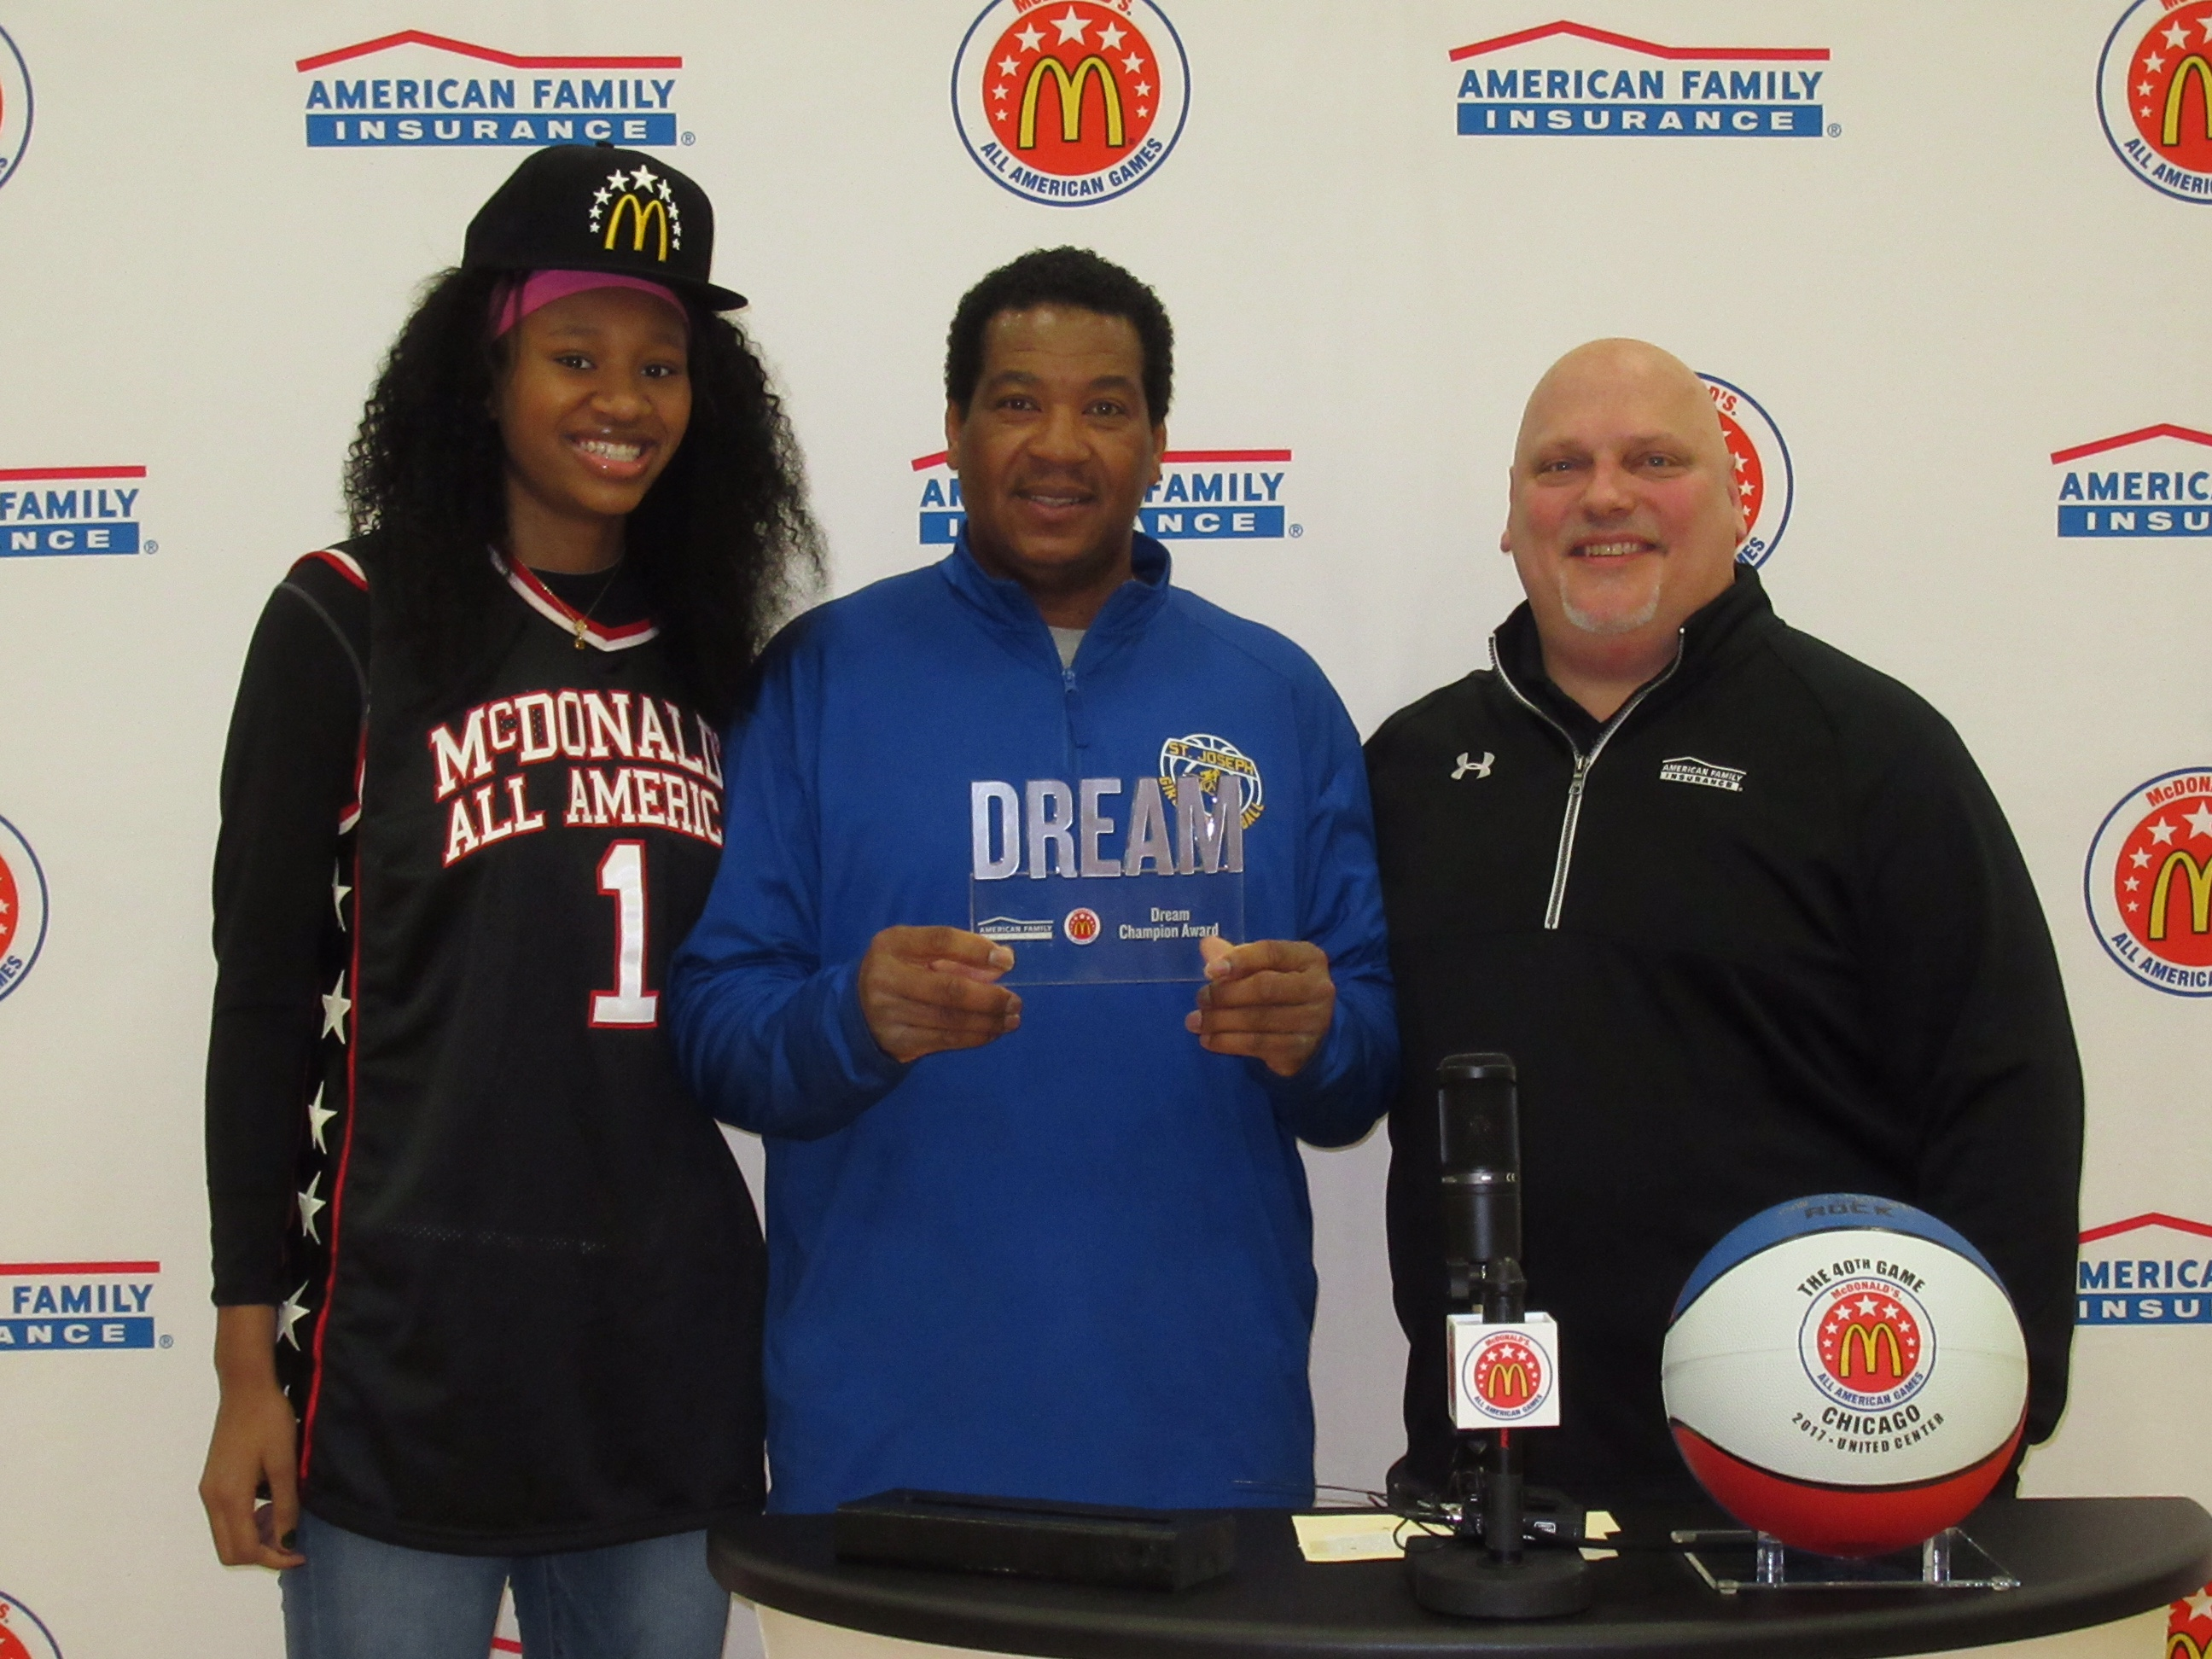 Cooks with her father, Jimmy, her Dream Champion award recipient (Photo: McDAAG)